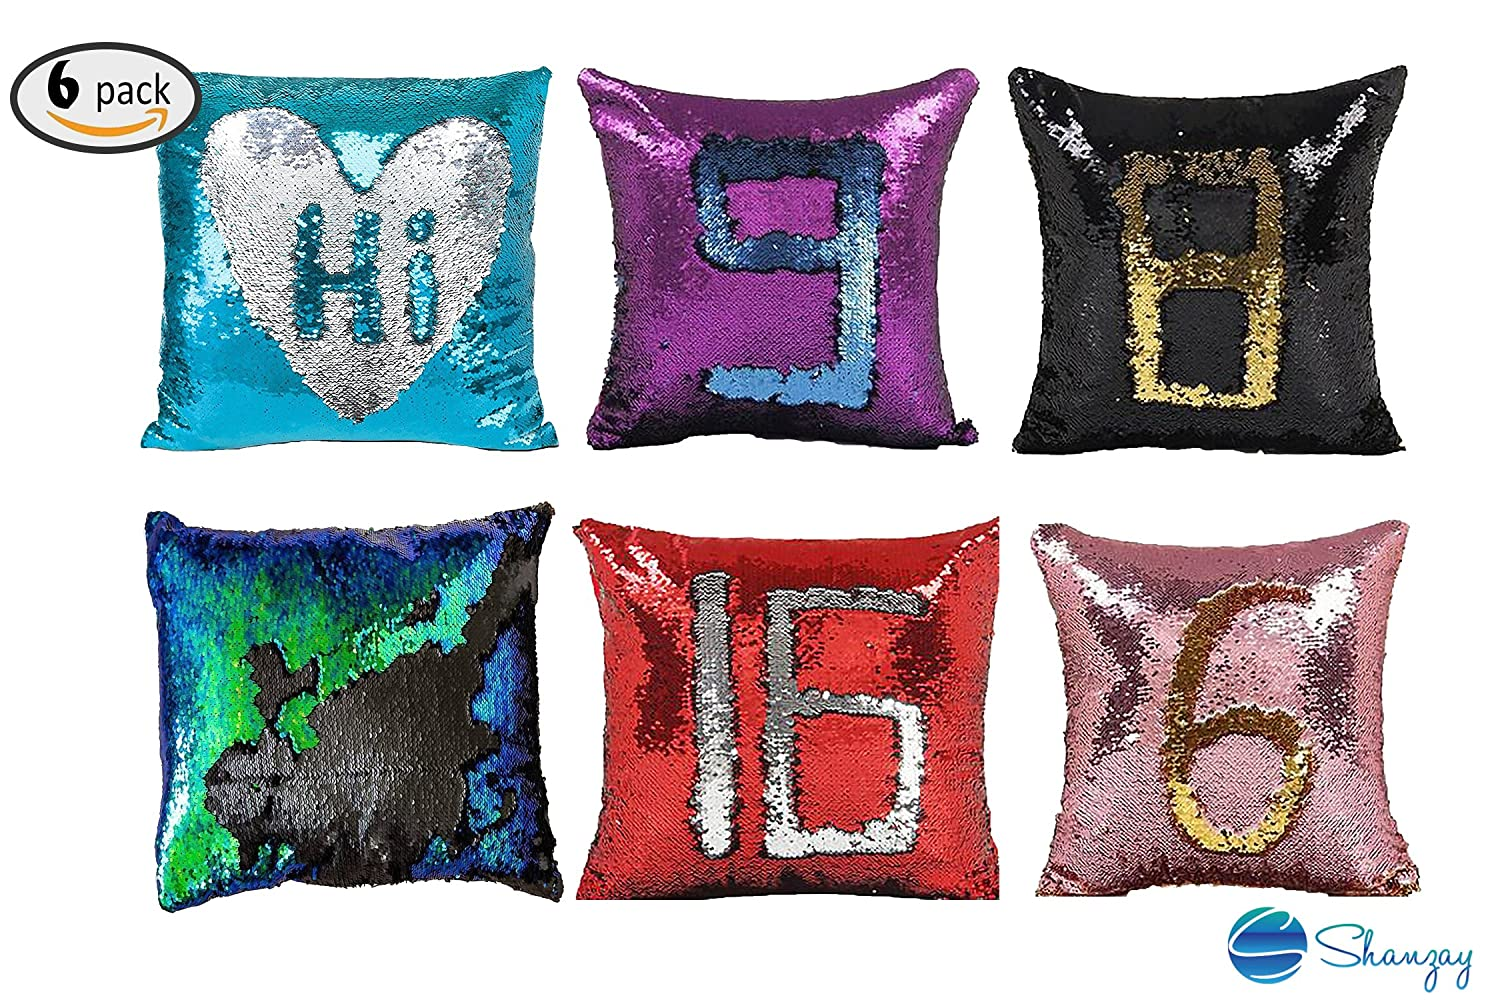 Pillow Case Sequin Mermaid Reversible, Glitter Sofa Cushion Cover, Pillow Case Double Color Pillowslip Case cover Tailor Reversible BY SHANZAY